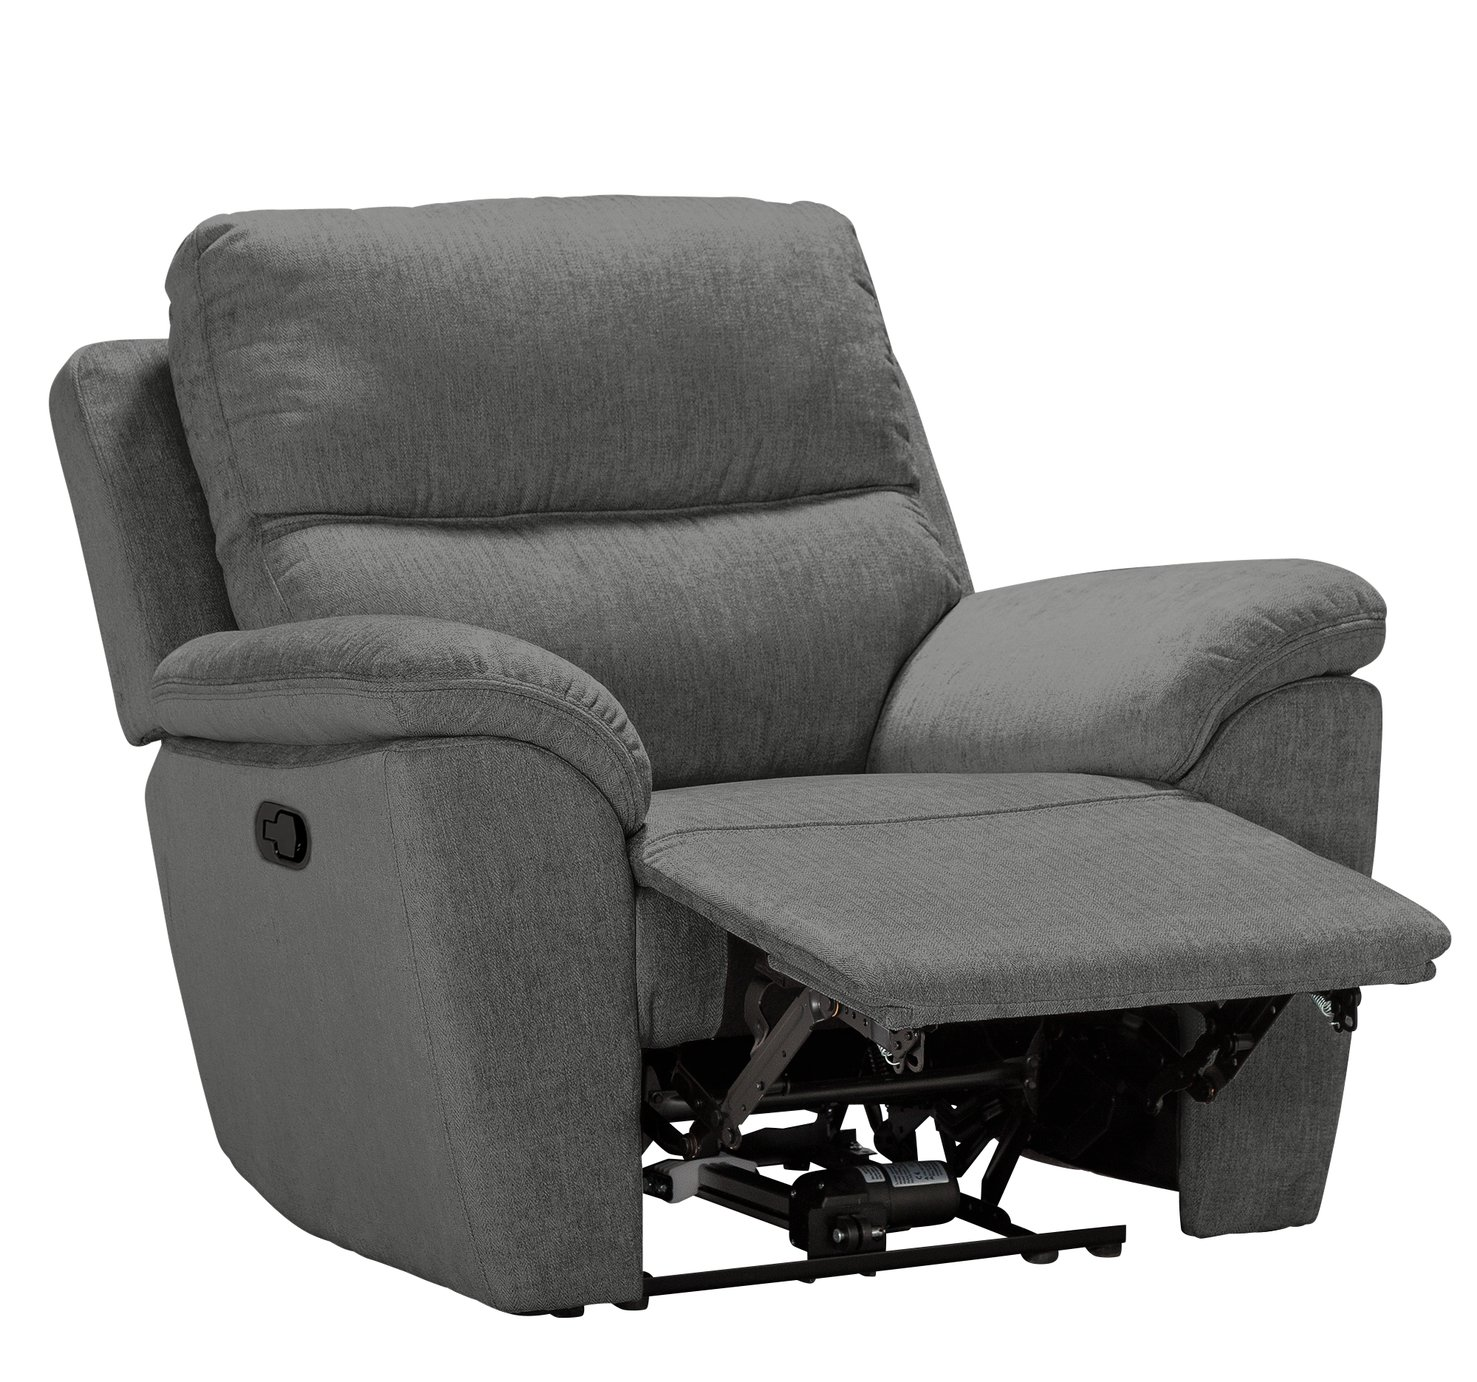 Argos Home Sandy Fabric Manual Recliner Chair - Charcoal